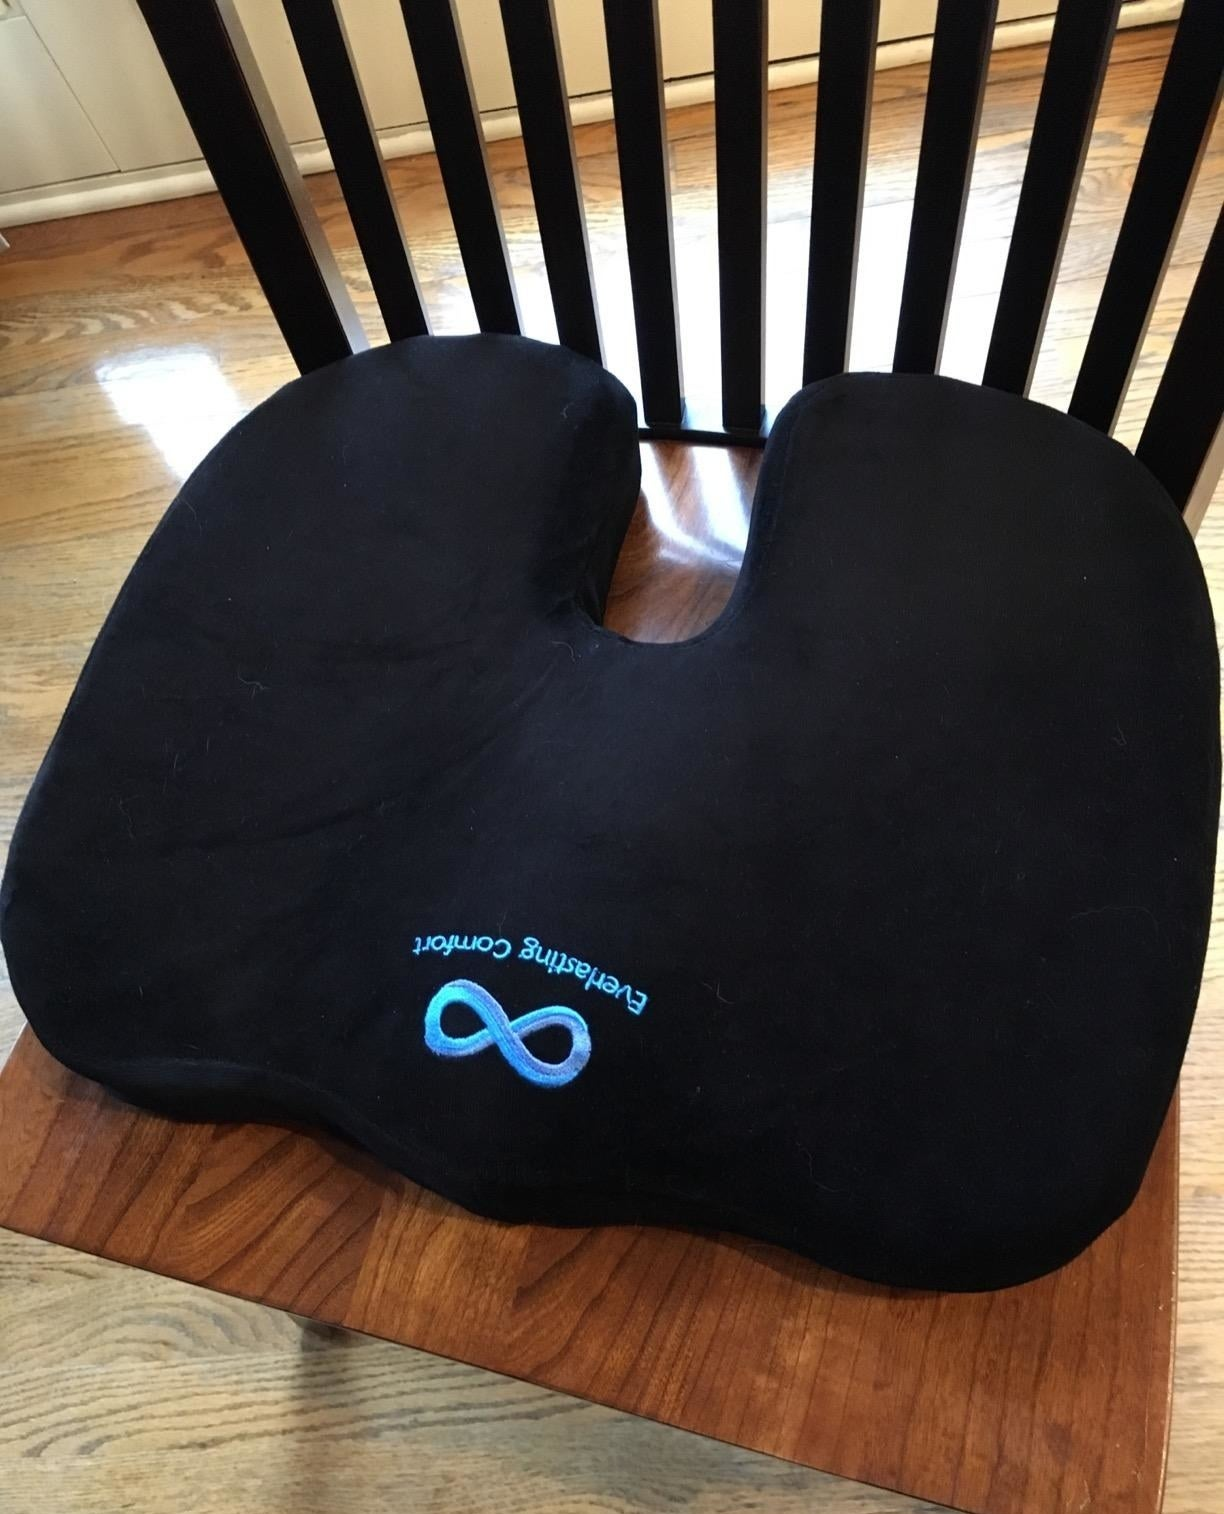 reviewer image of the everlasting comfort seat cushion on a wooden chair